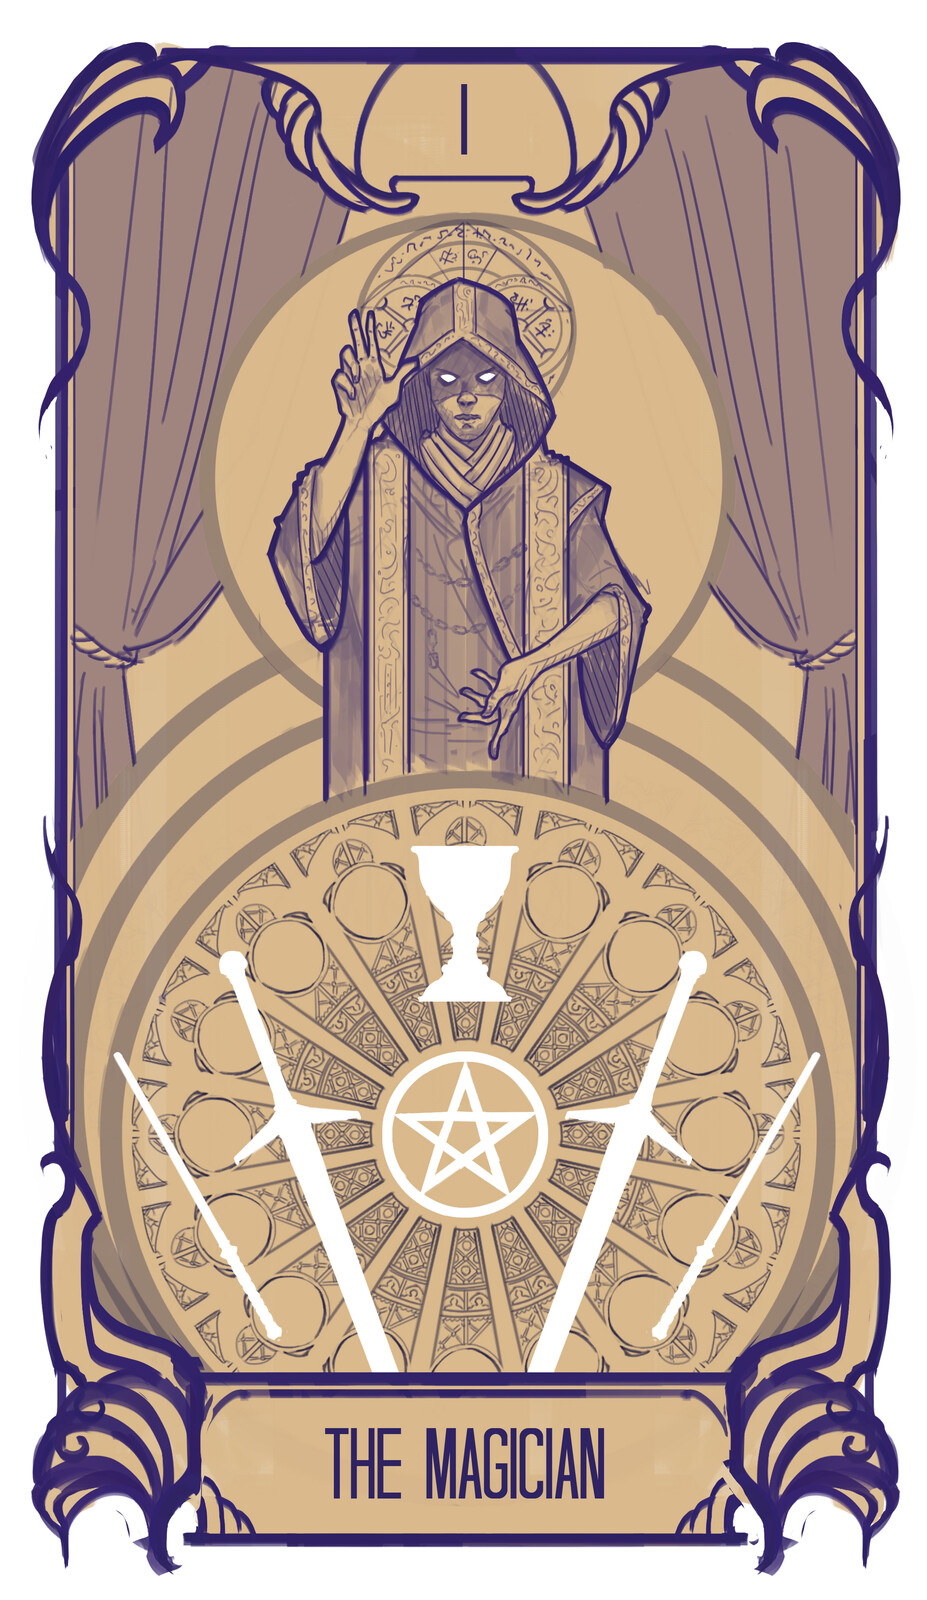 1. The Magician